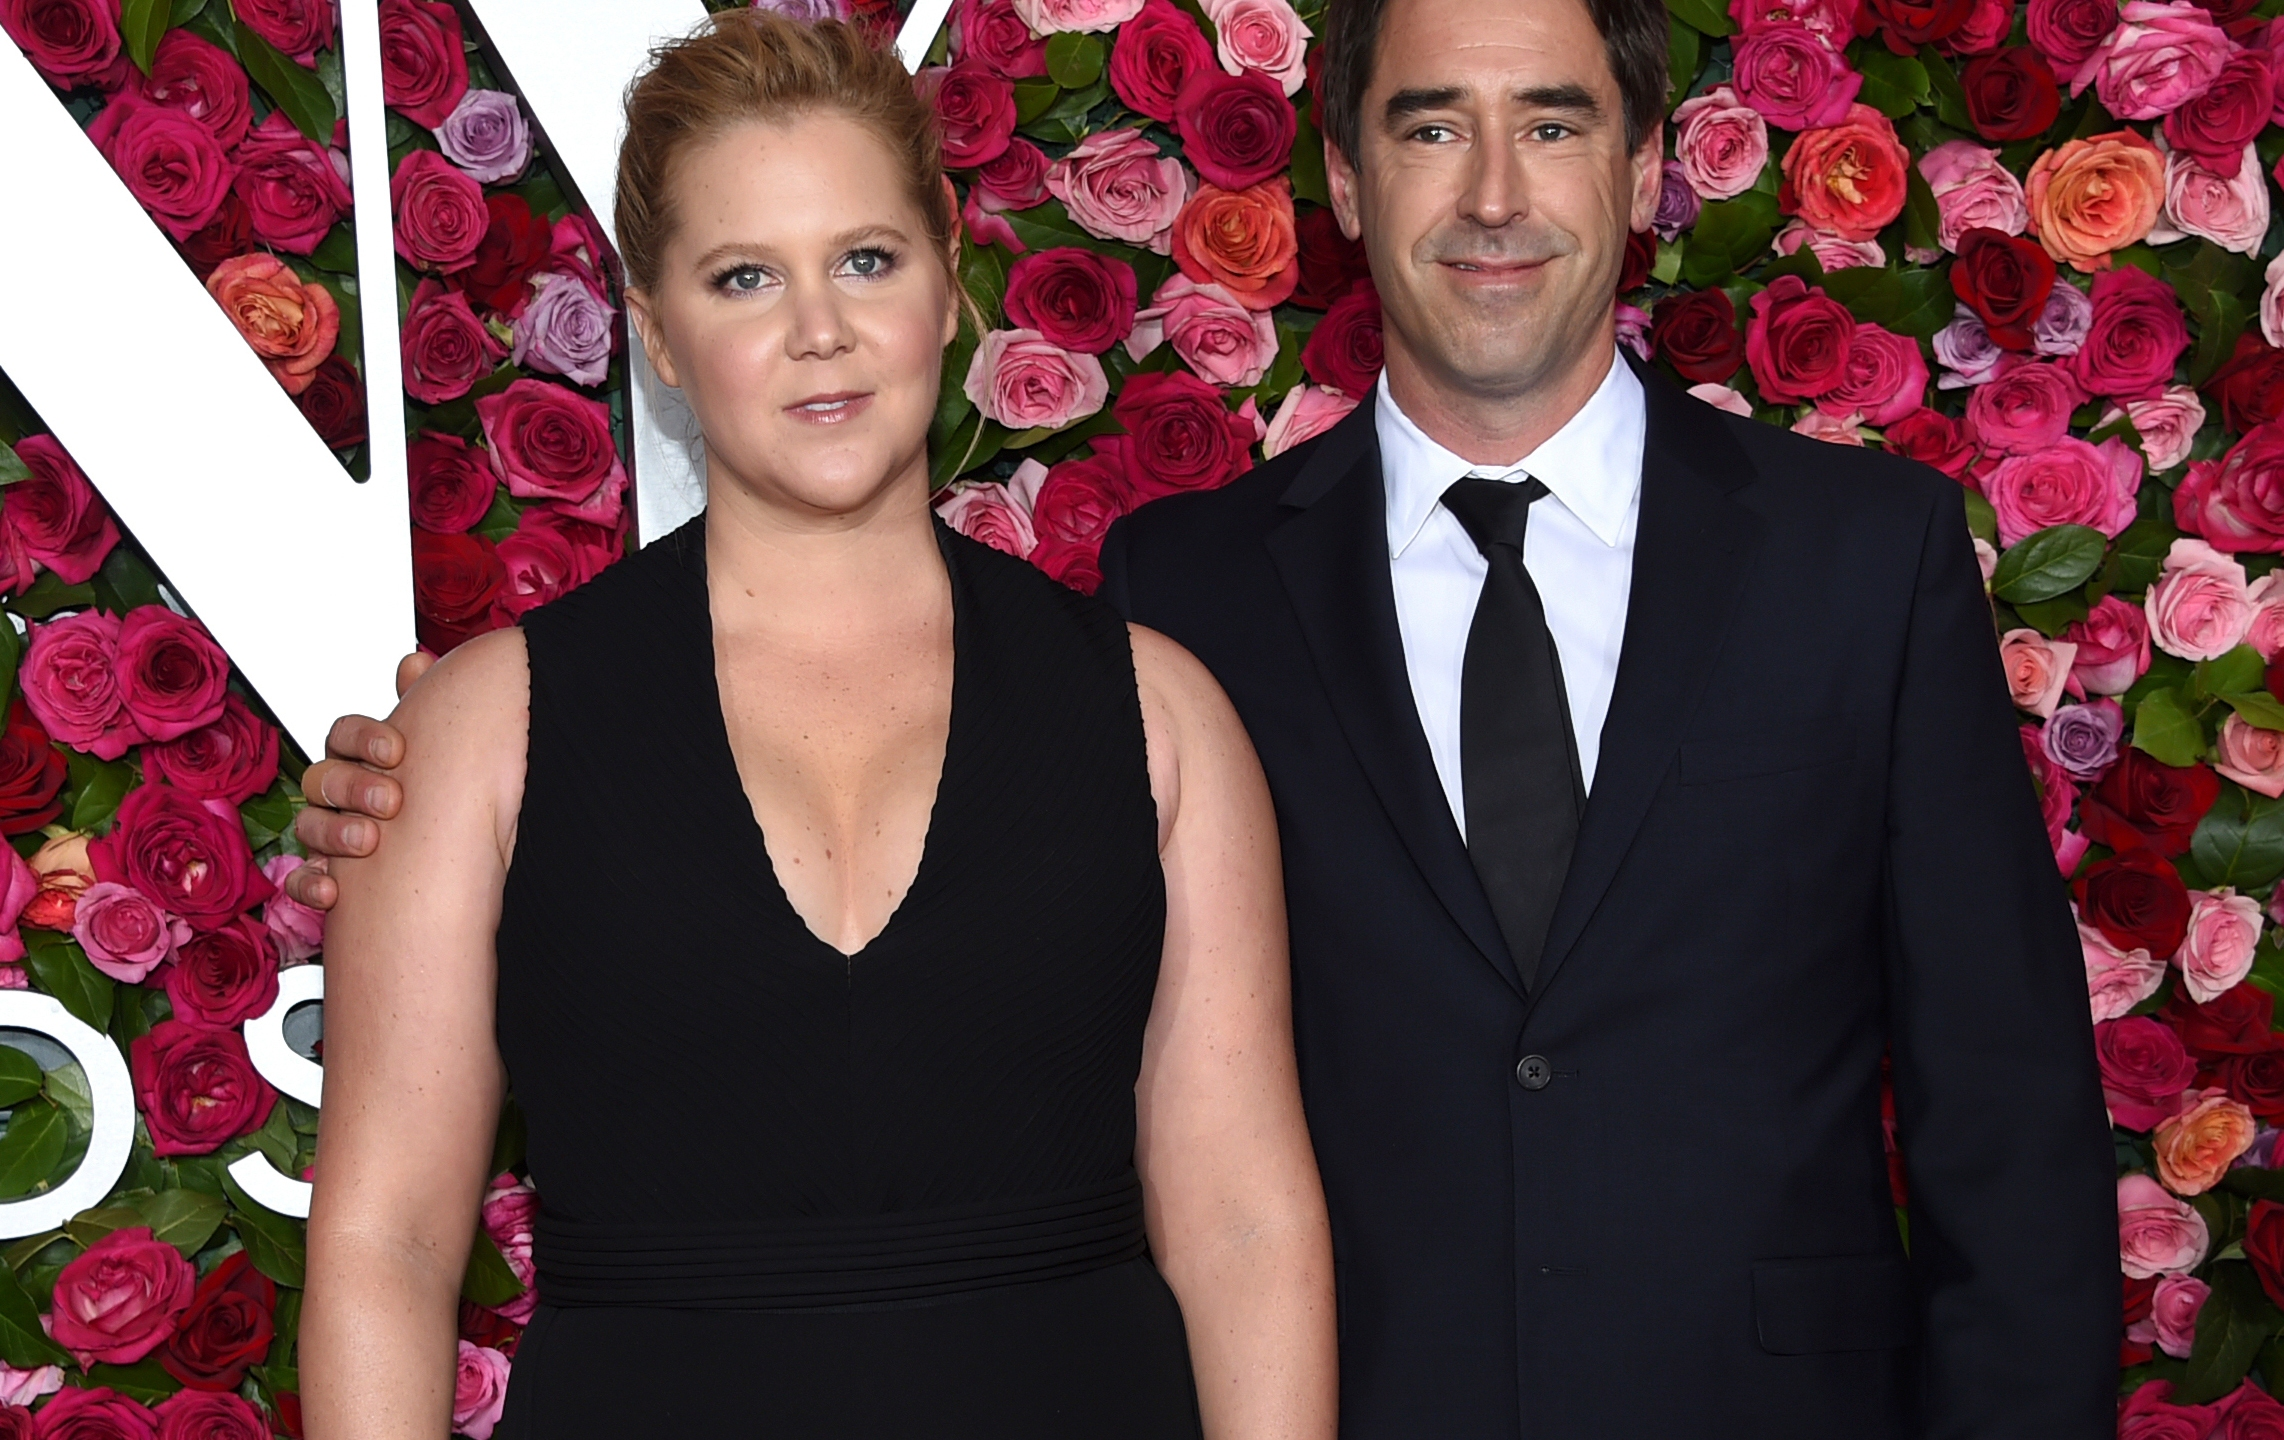 People-Amy_Schumer_Pregnant_73506-159532.jpg53334858